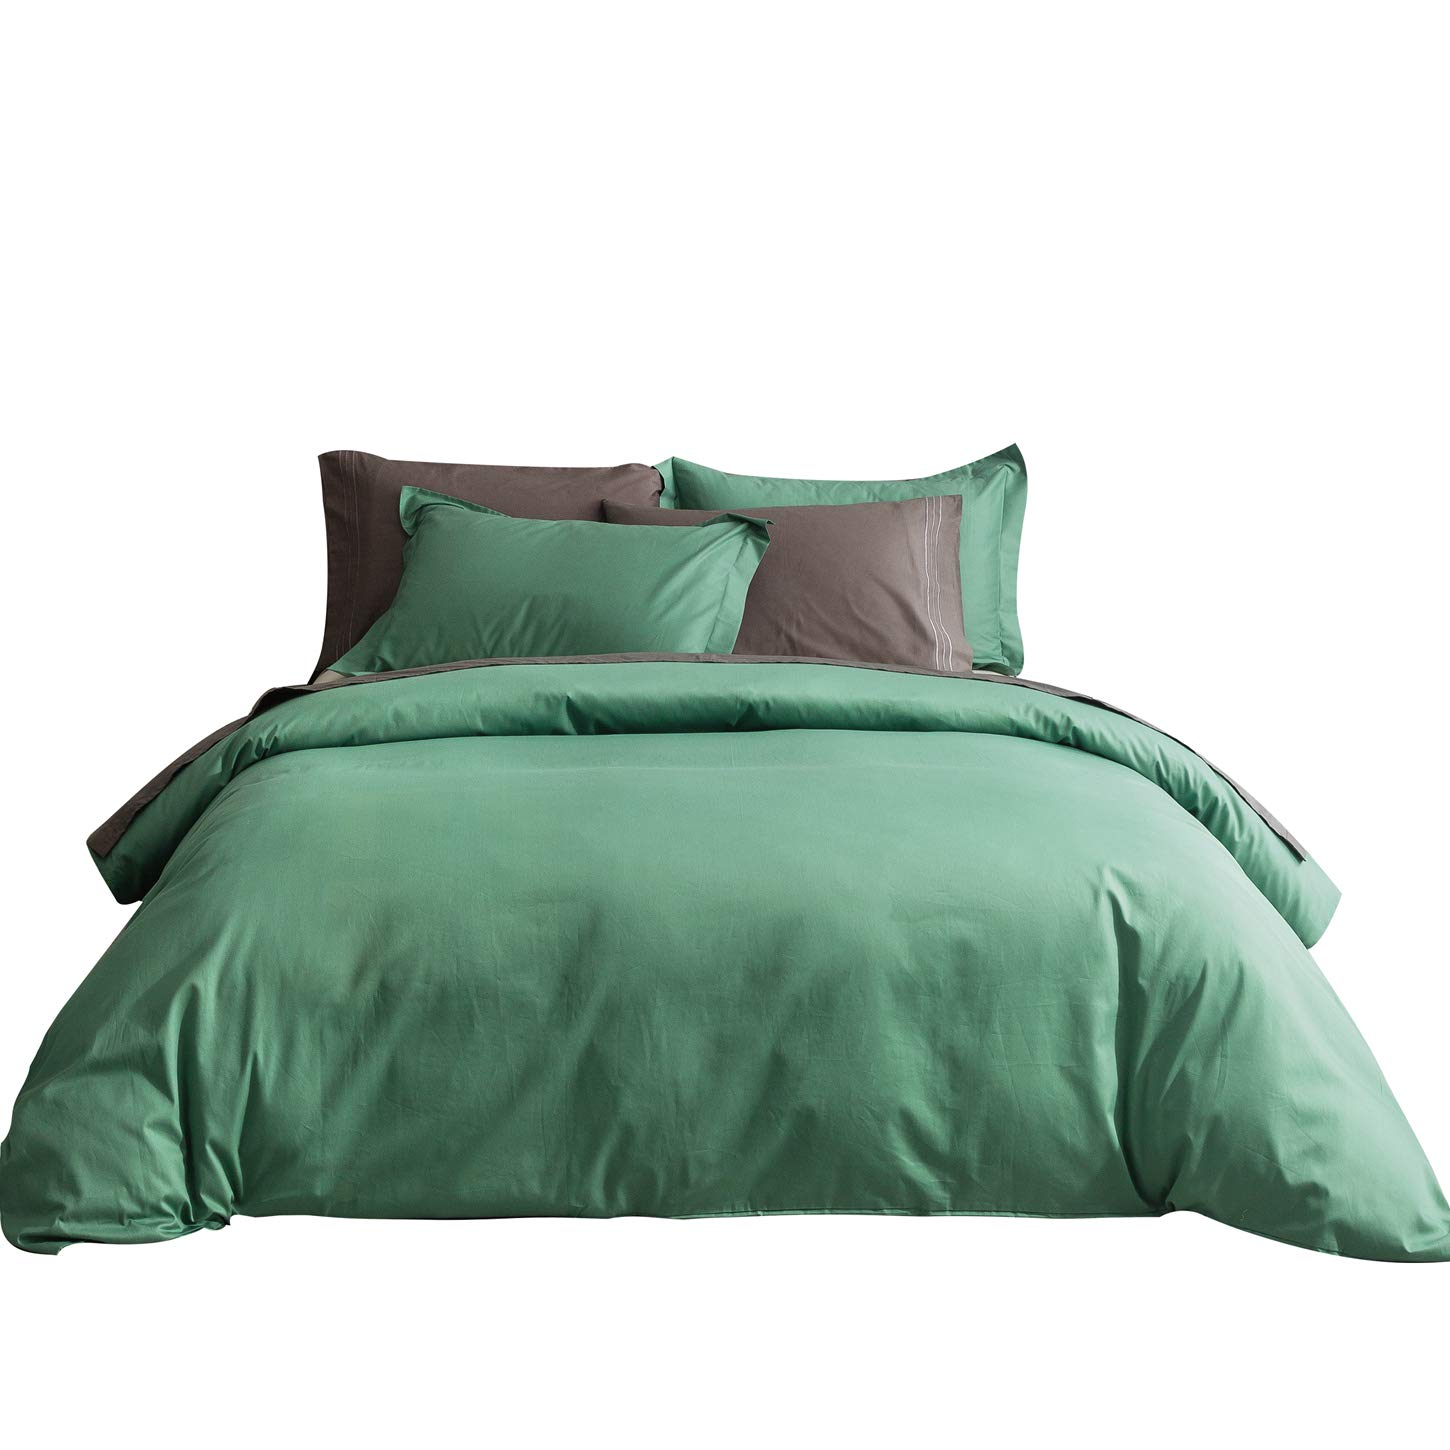 SUSYBAO 2 Pieces Duvet Cover Set 100% Natural Cotton Twin/Single Size 1 Duvet Cover 1 Pillow Sham Solid White Hotel Quality Ultra Soft Breathable Comfortable Extremely Durable Bedding with Zipper Ties SZJRQC2017041003